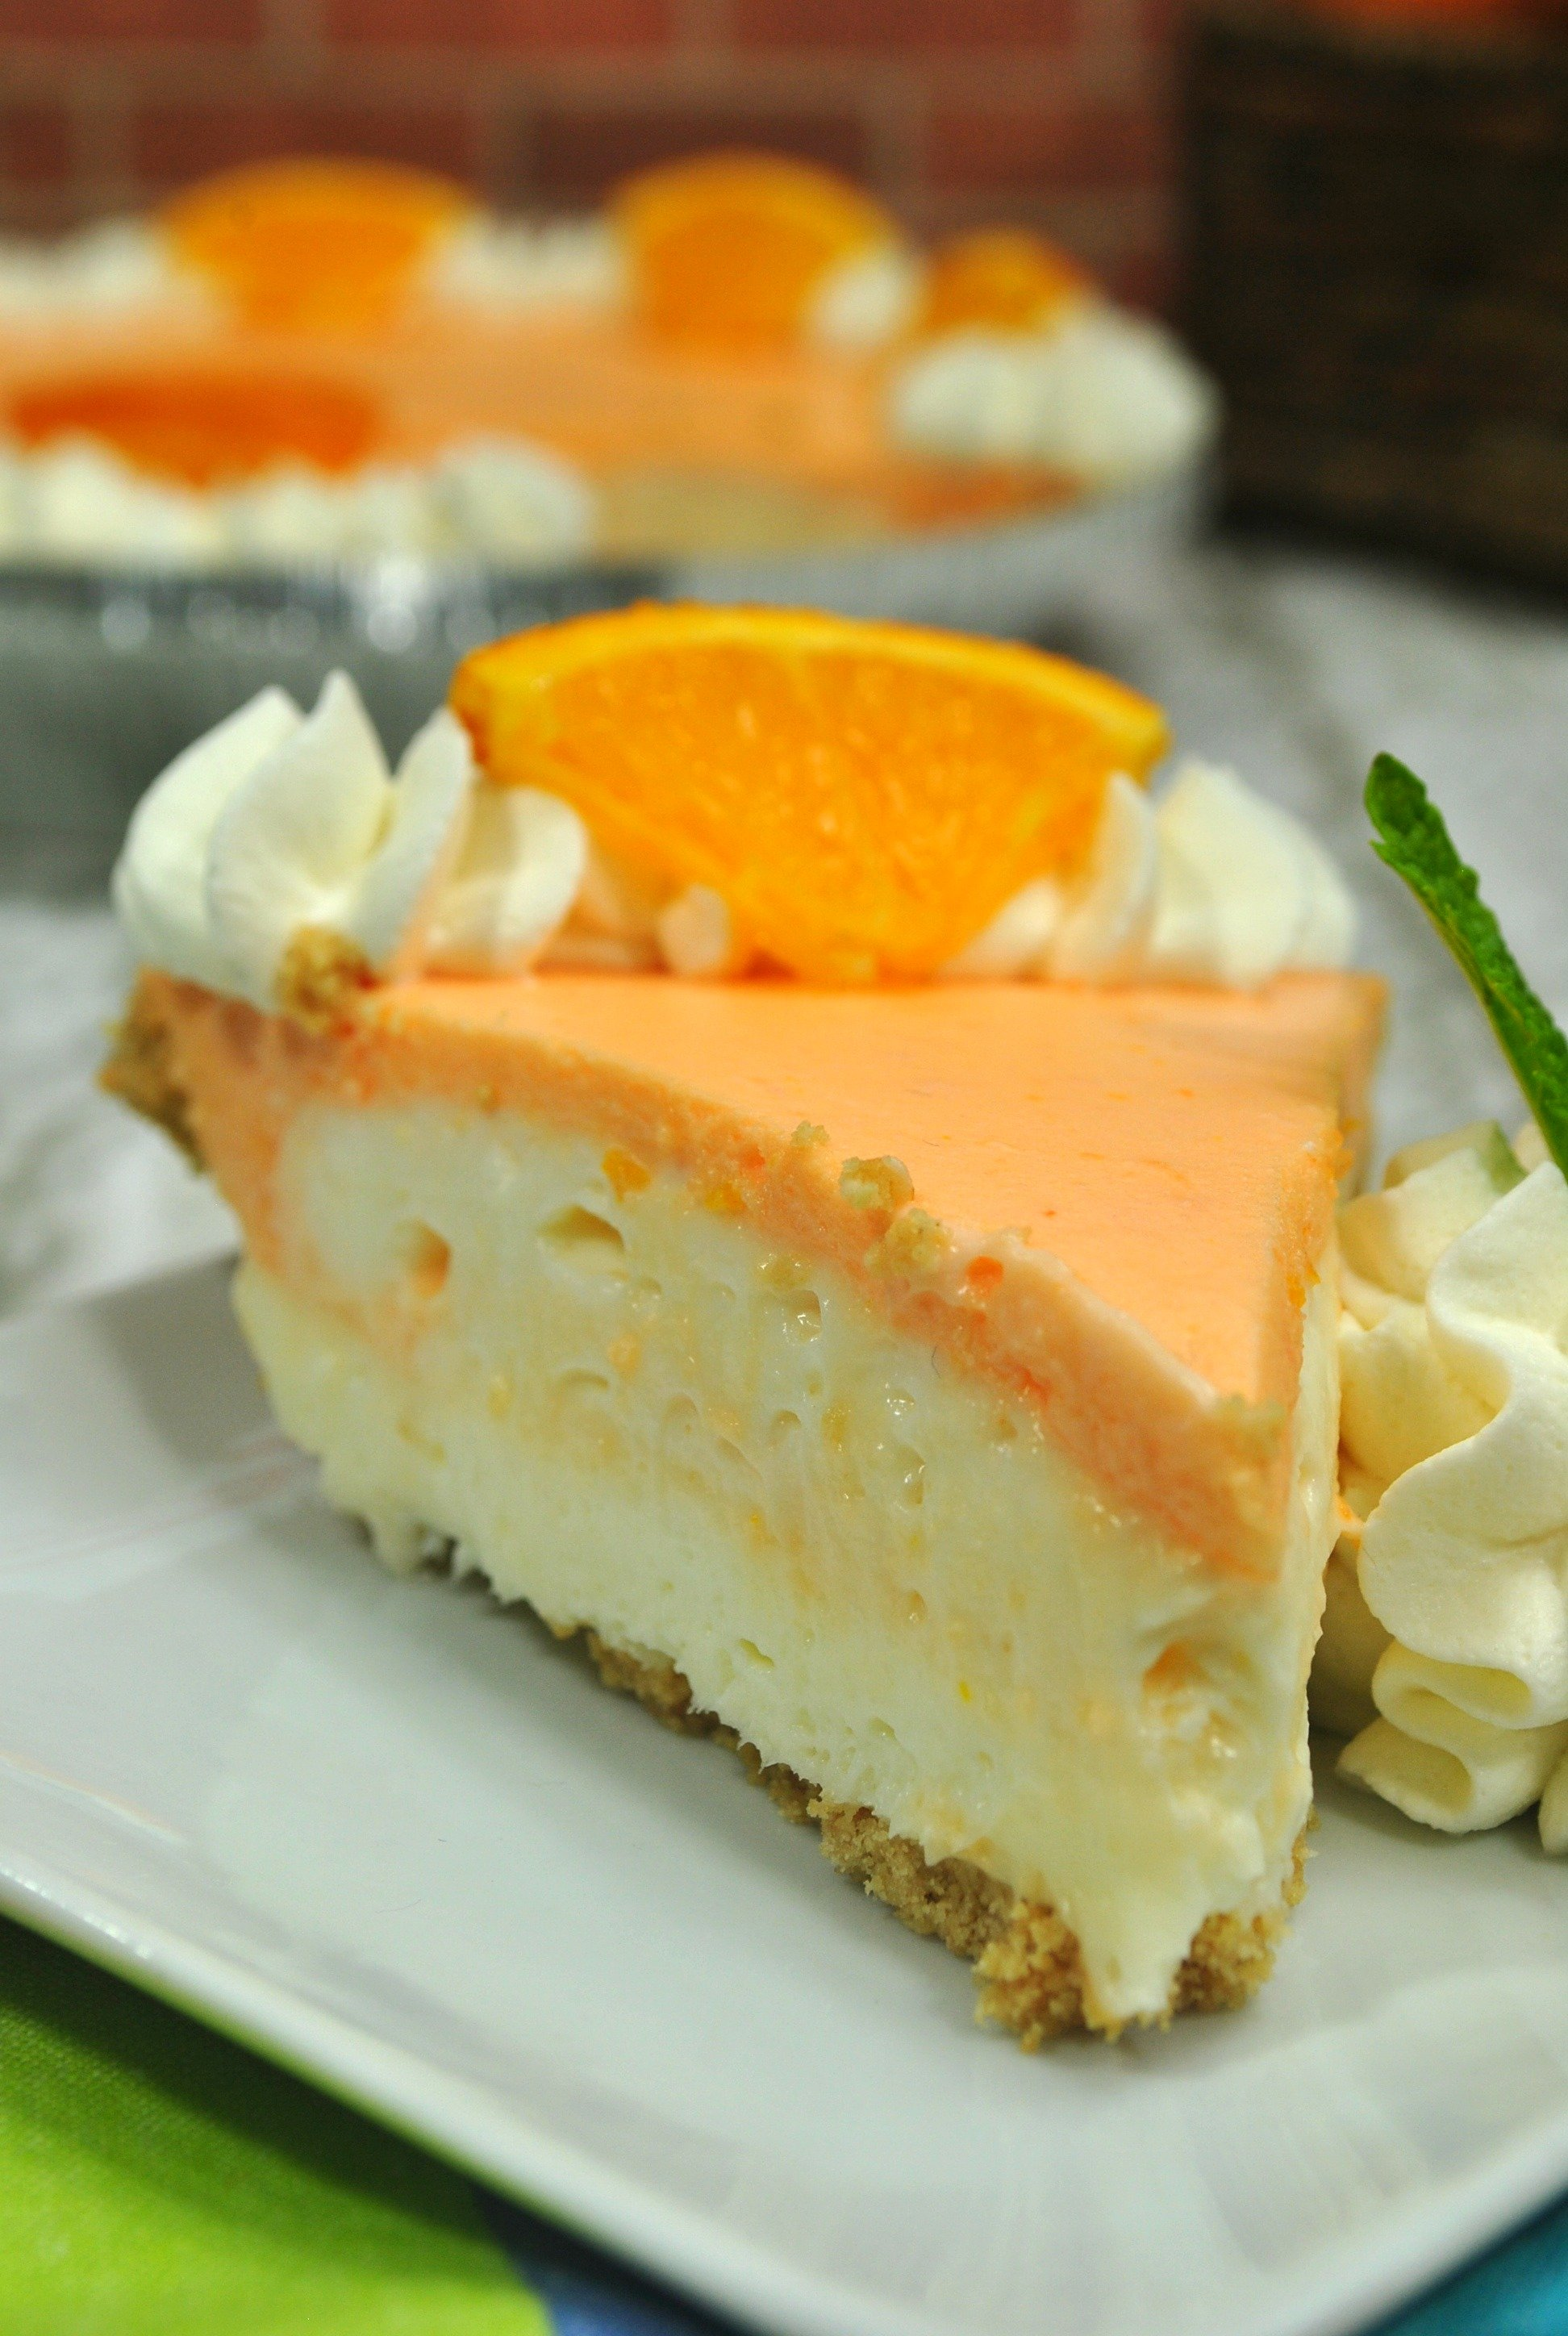 No Bake Orange Creamsicle Cheesecake!